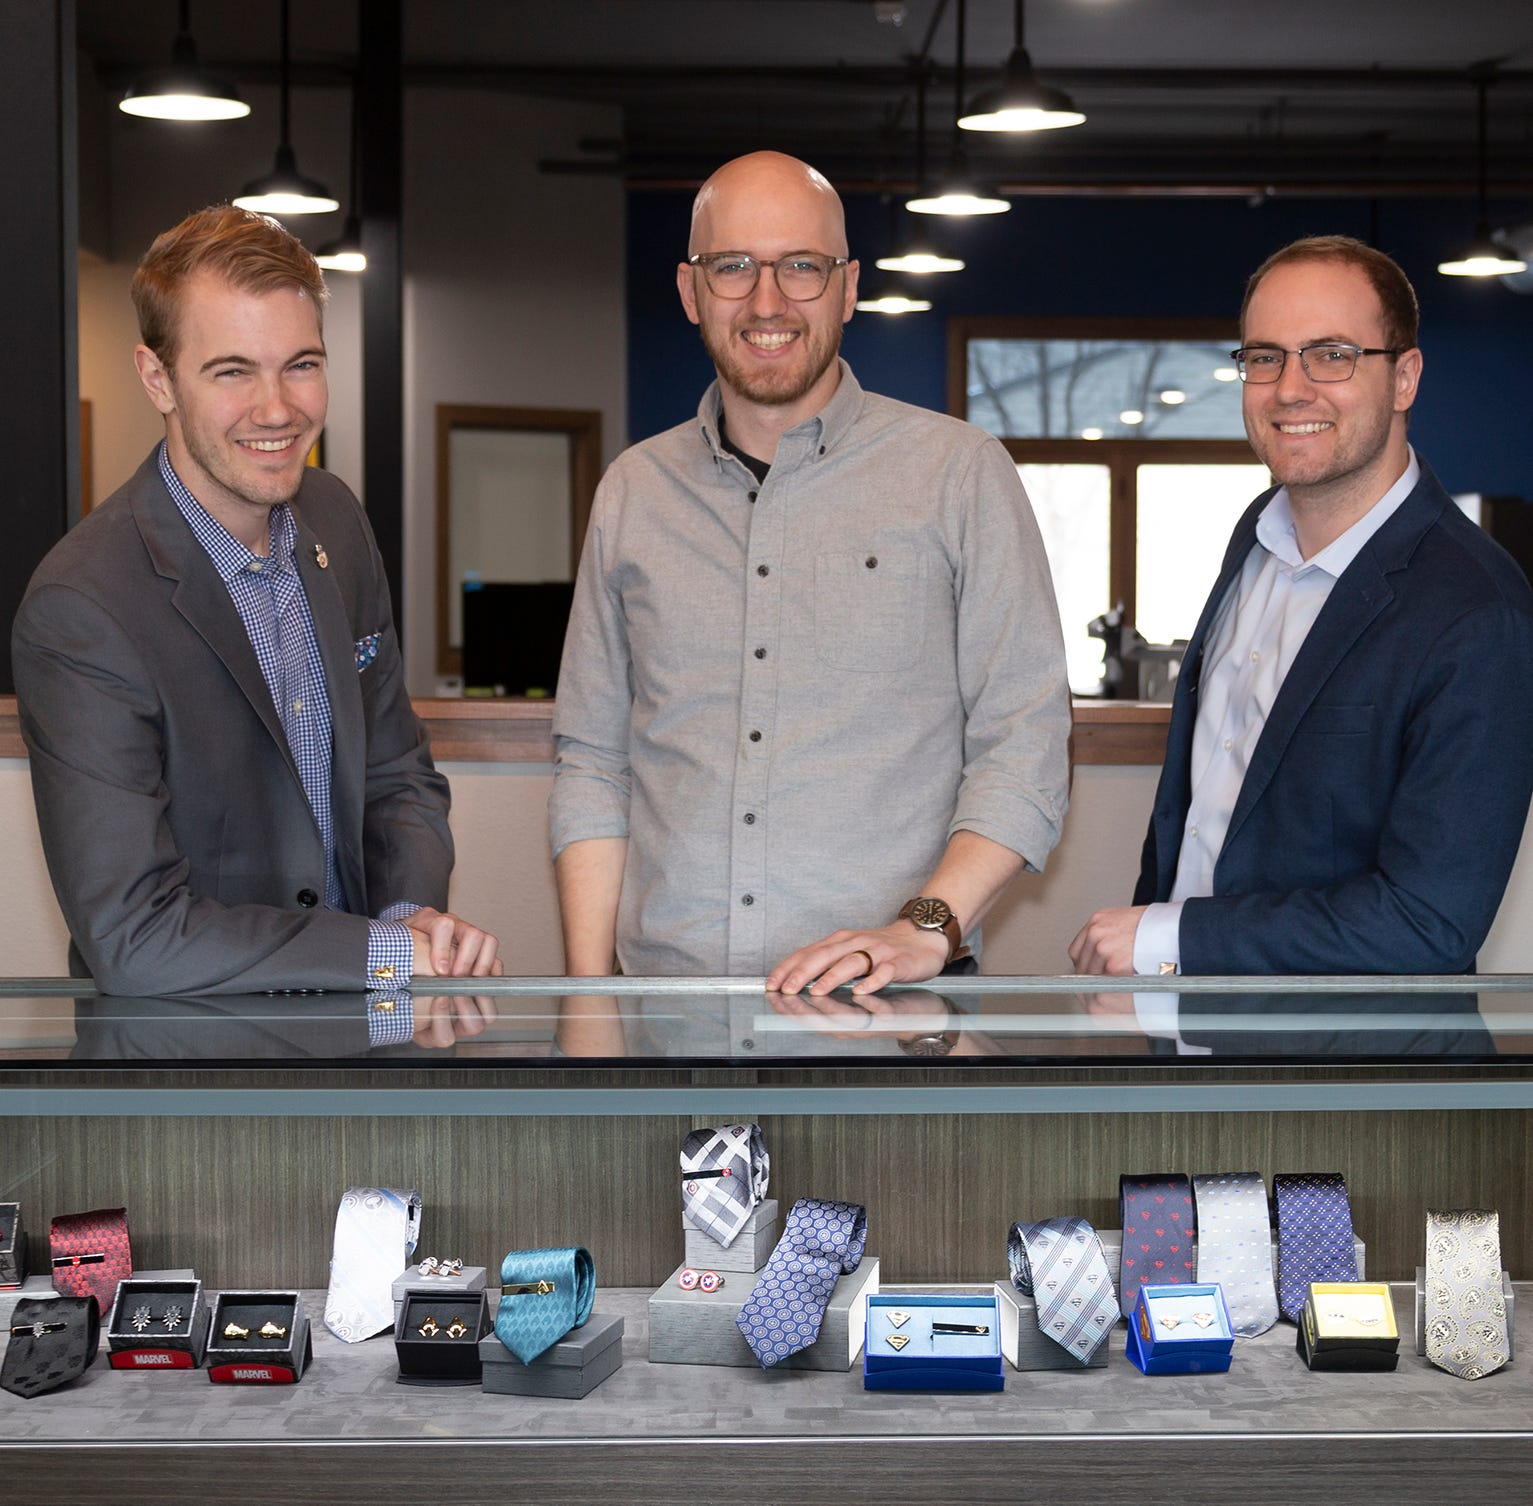 Broin brothers-owned Cufflinks to open local storefront